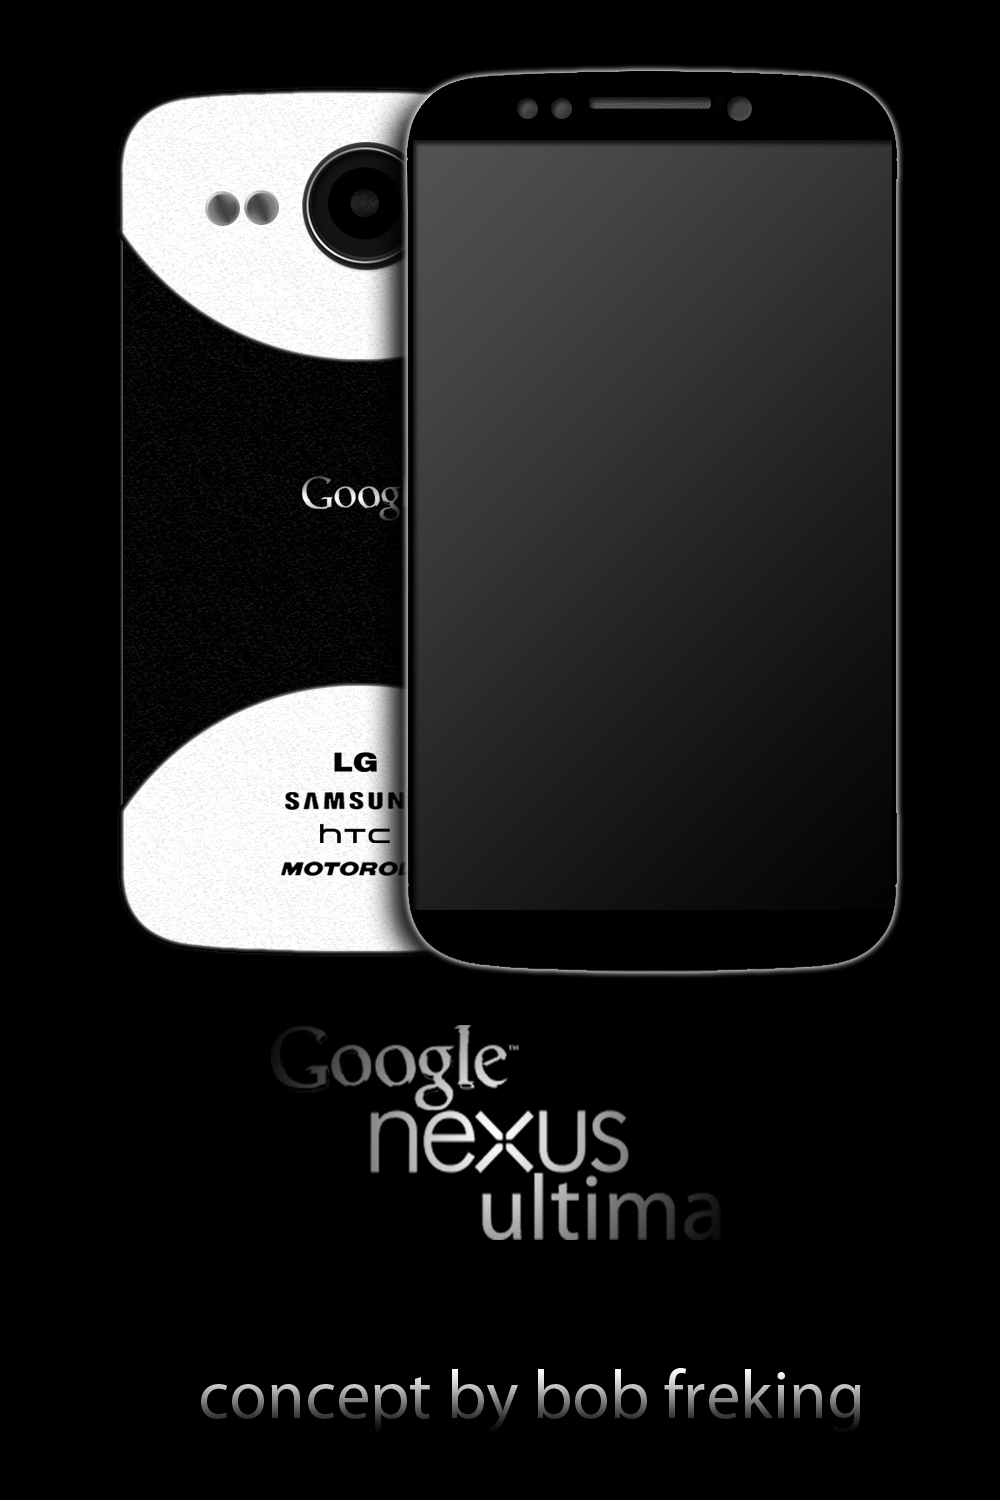 Galaxy Nexus Ultima